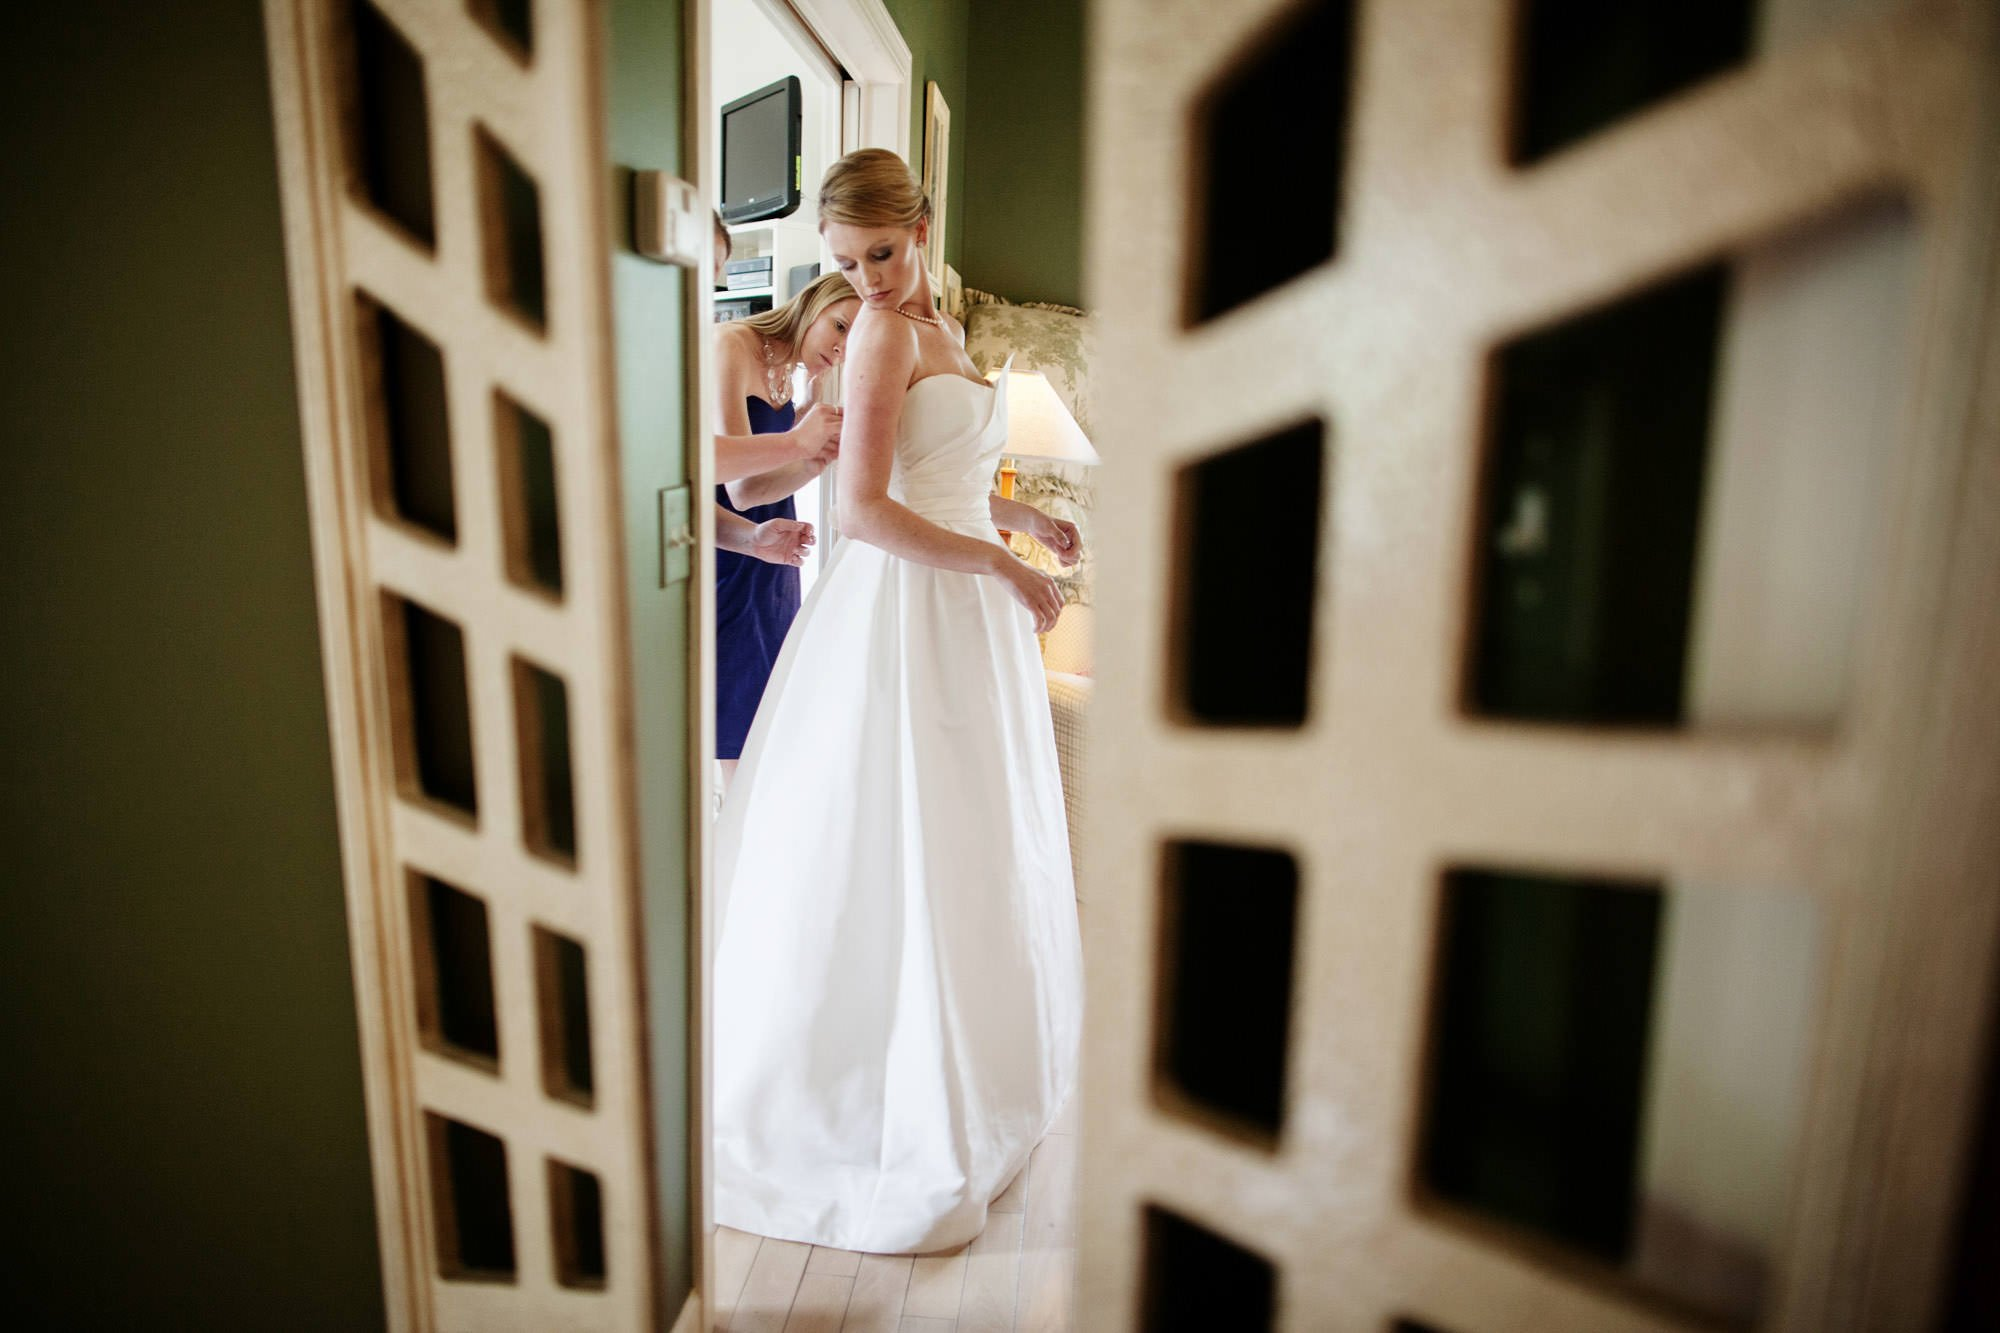 The bride puts on her wedding dress during her Oaks Waterfront Inn and Events Wedding.